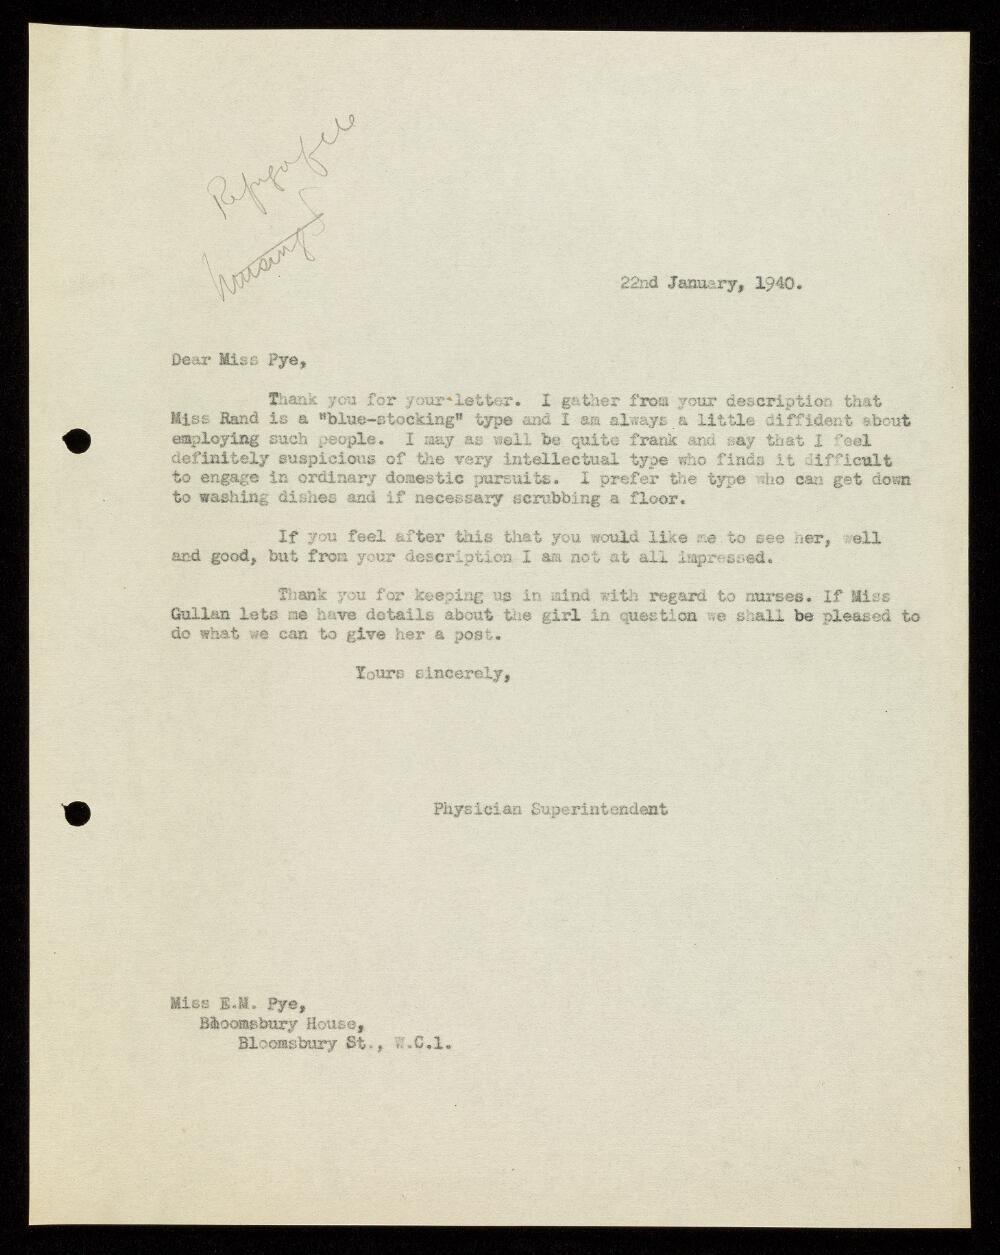 Letter from Dr. Arthur Pool to Miss Pye, Nursing and Midwifery Department of the Central Office for Refugees, concerning Rose Rand, January 1940.